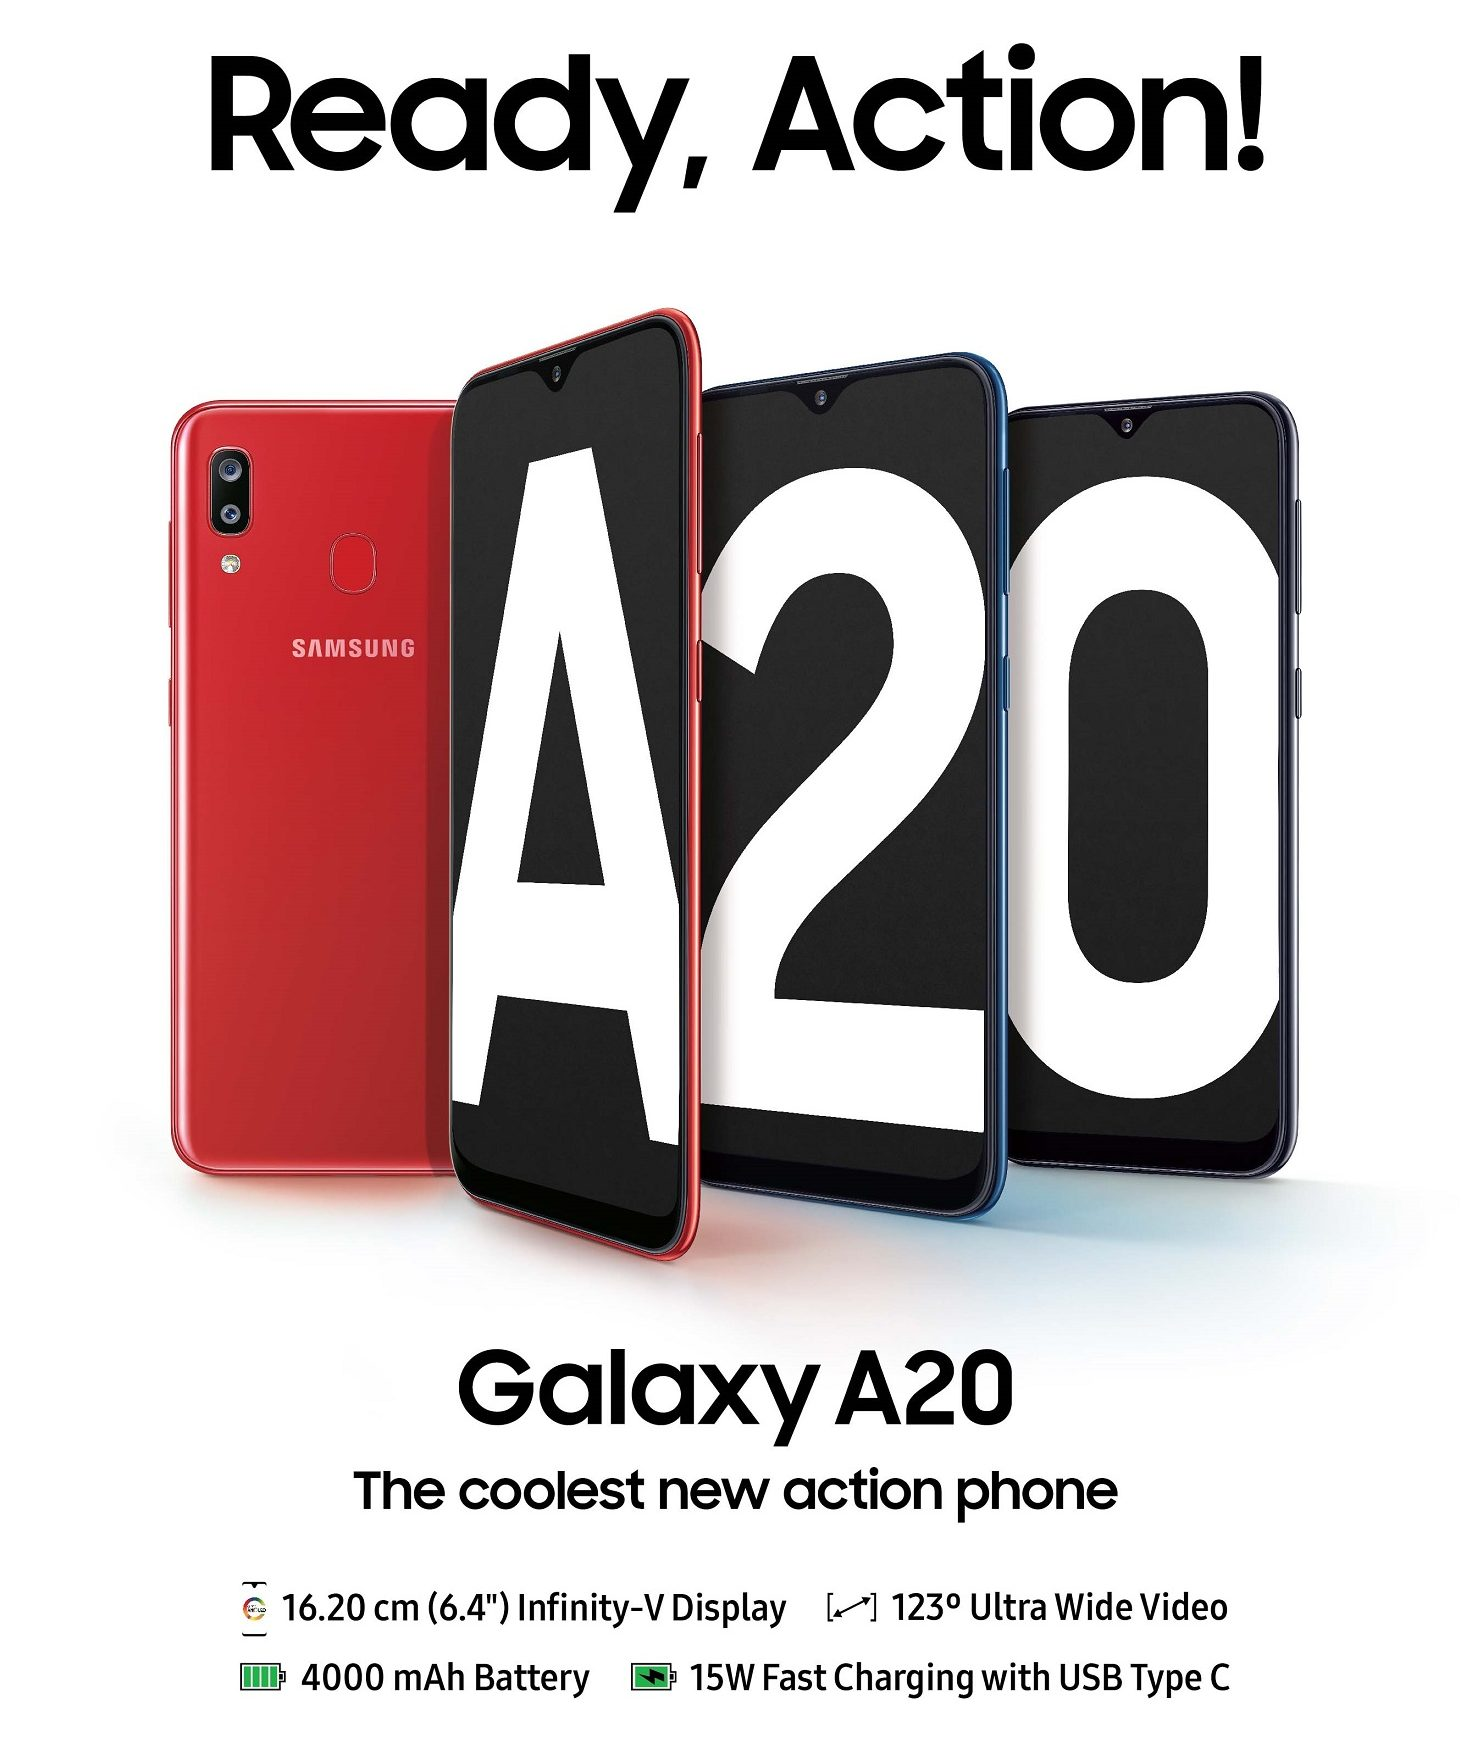 Samsung brings the Galaxy A20 to its already crowded lineup